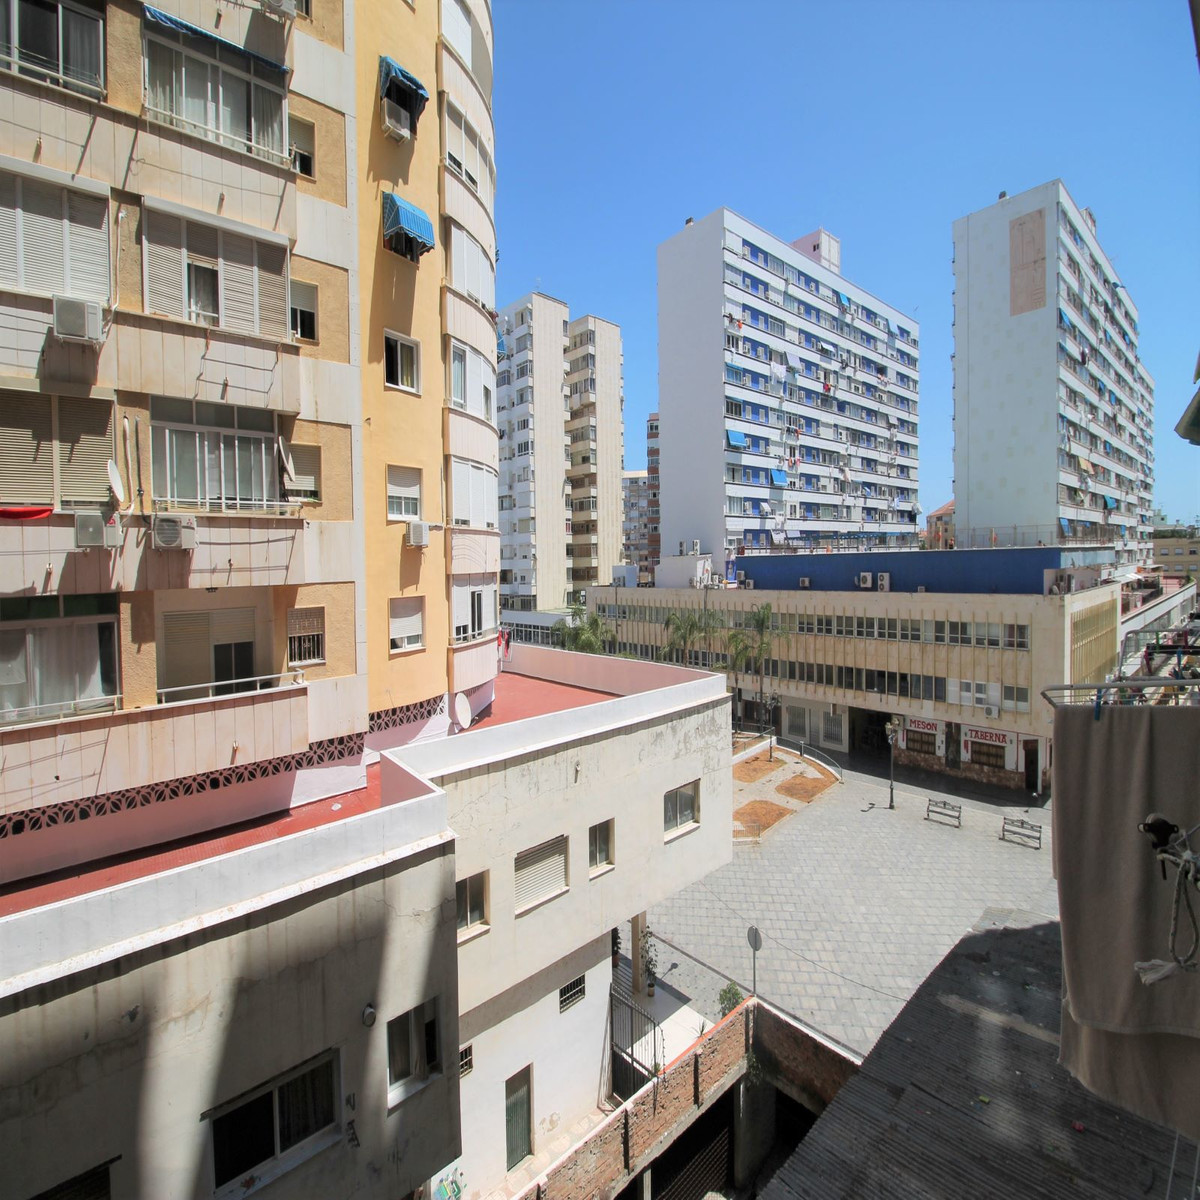 BANK REPOSSESSION AND 100 % MORTGAGE AVAILABLE! APARTMENT IN TORREMOLINOS - MALAGA. PRICED TO SELL B, Spain